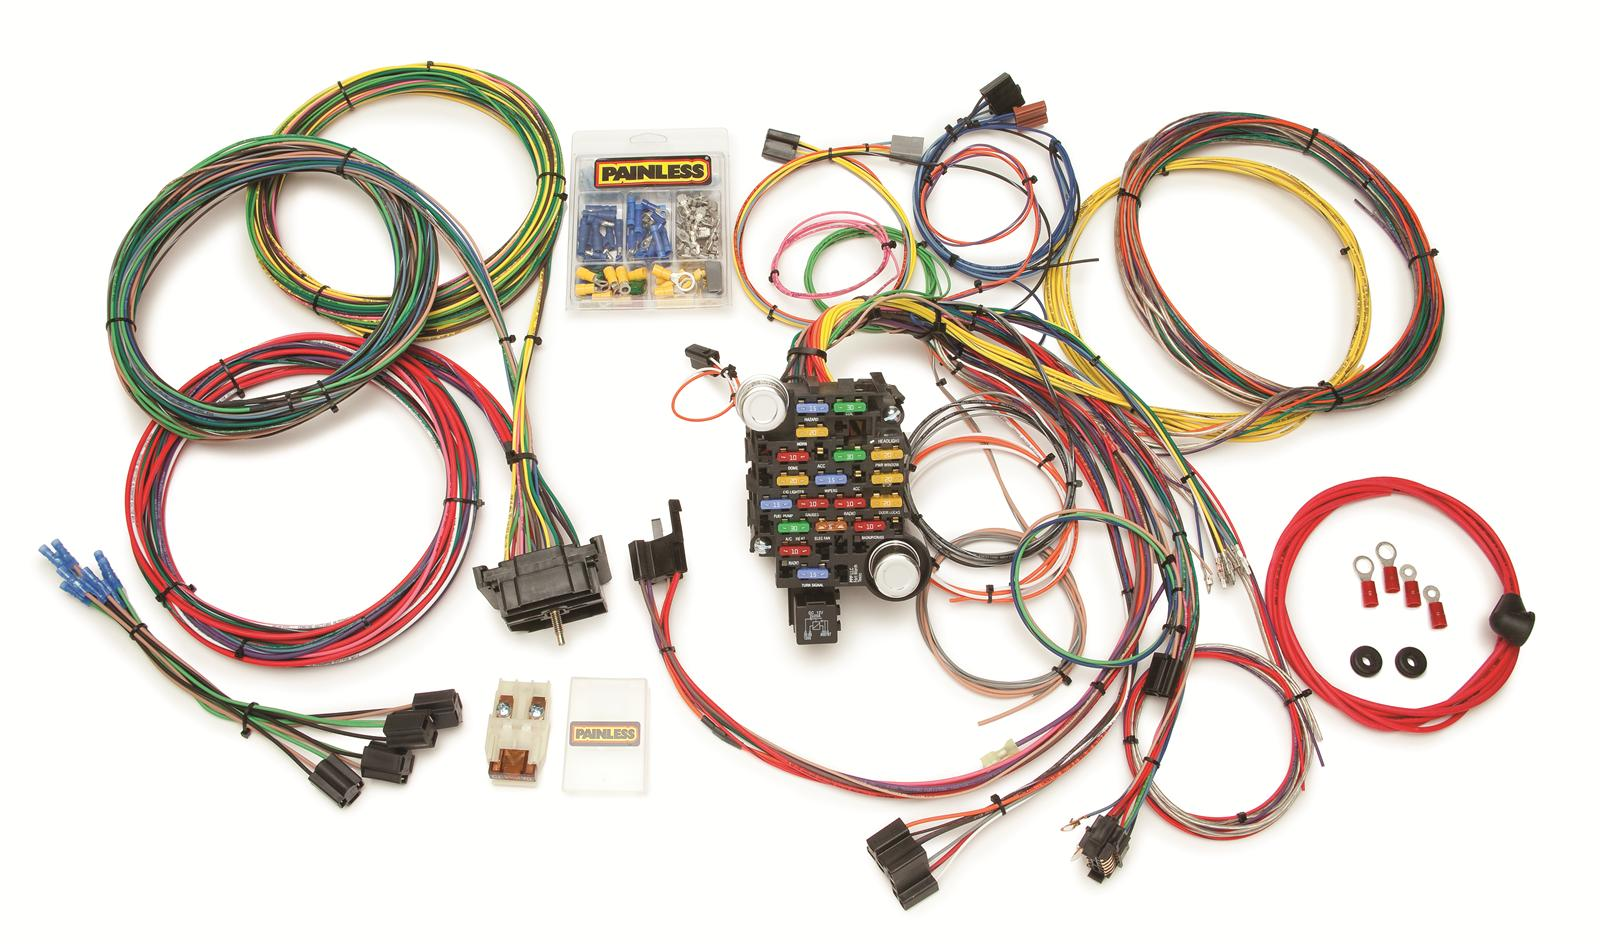 prf 10206_xl painless performance gmc chevy truck harnesses 10206 free chevy wiring harness at mifinder.co